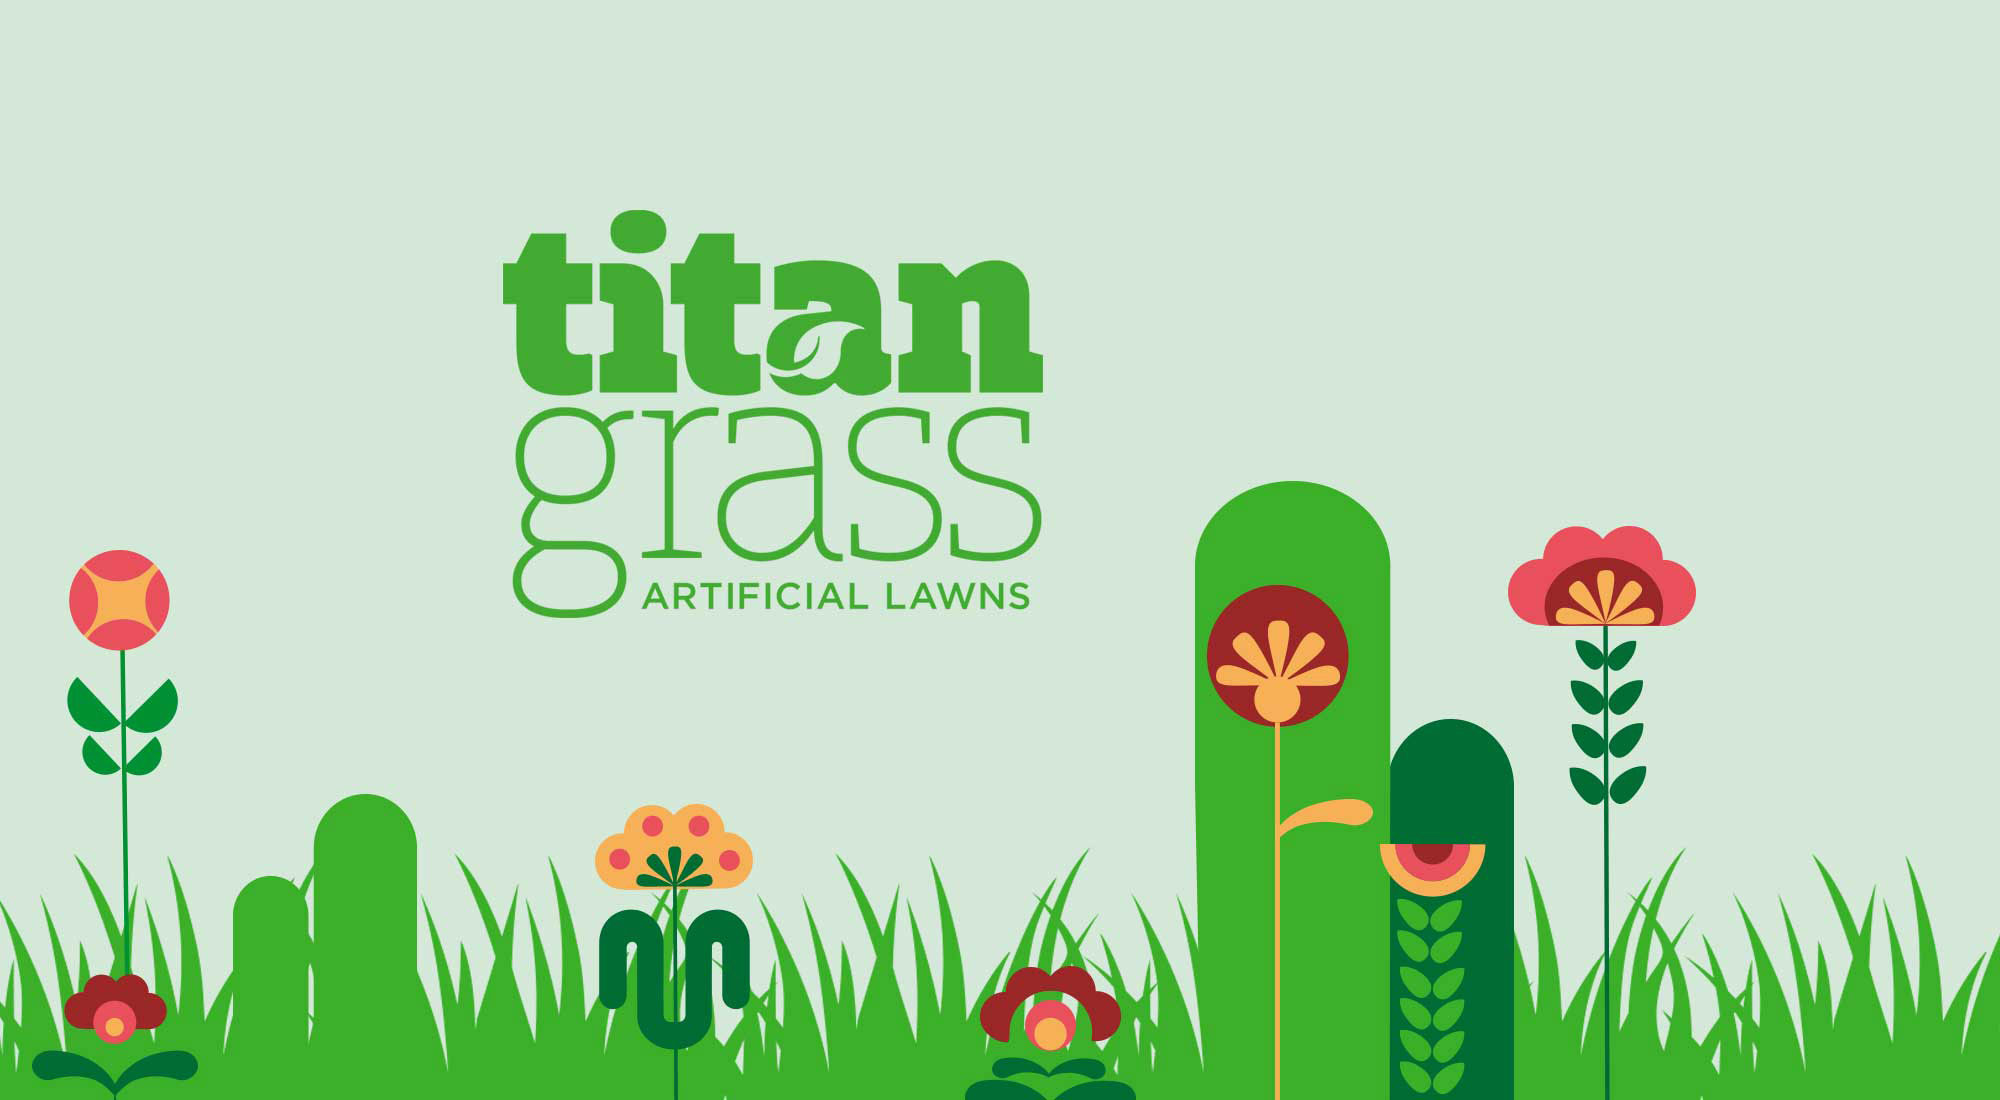 Titan Grass - Buy. Install. Enjoy